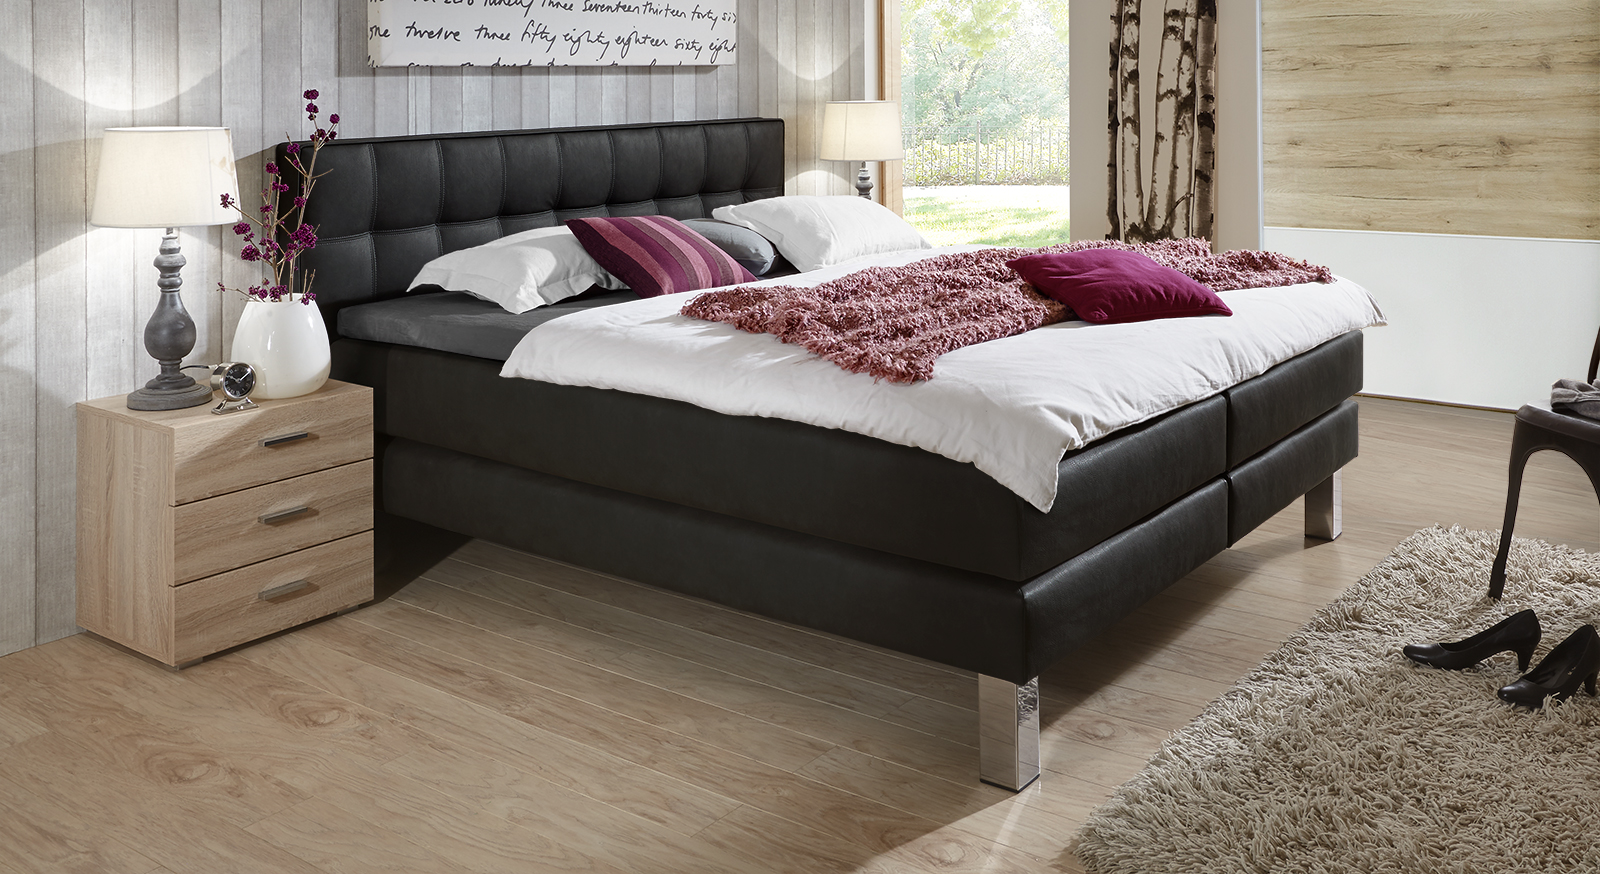 boxspringbett aus luxus kunstleder und metall la mancha. Black Bedroom Furniture Sets. Home Design Ideas